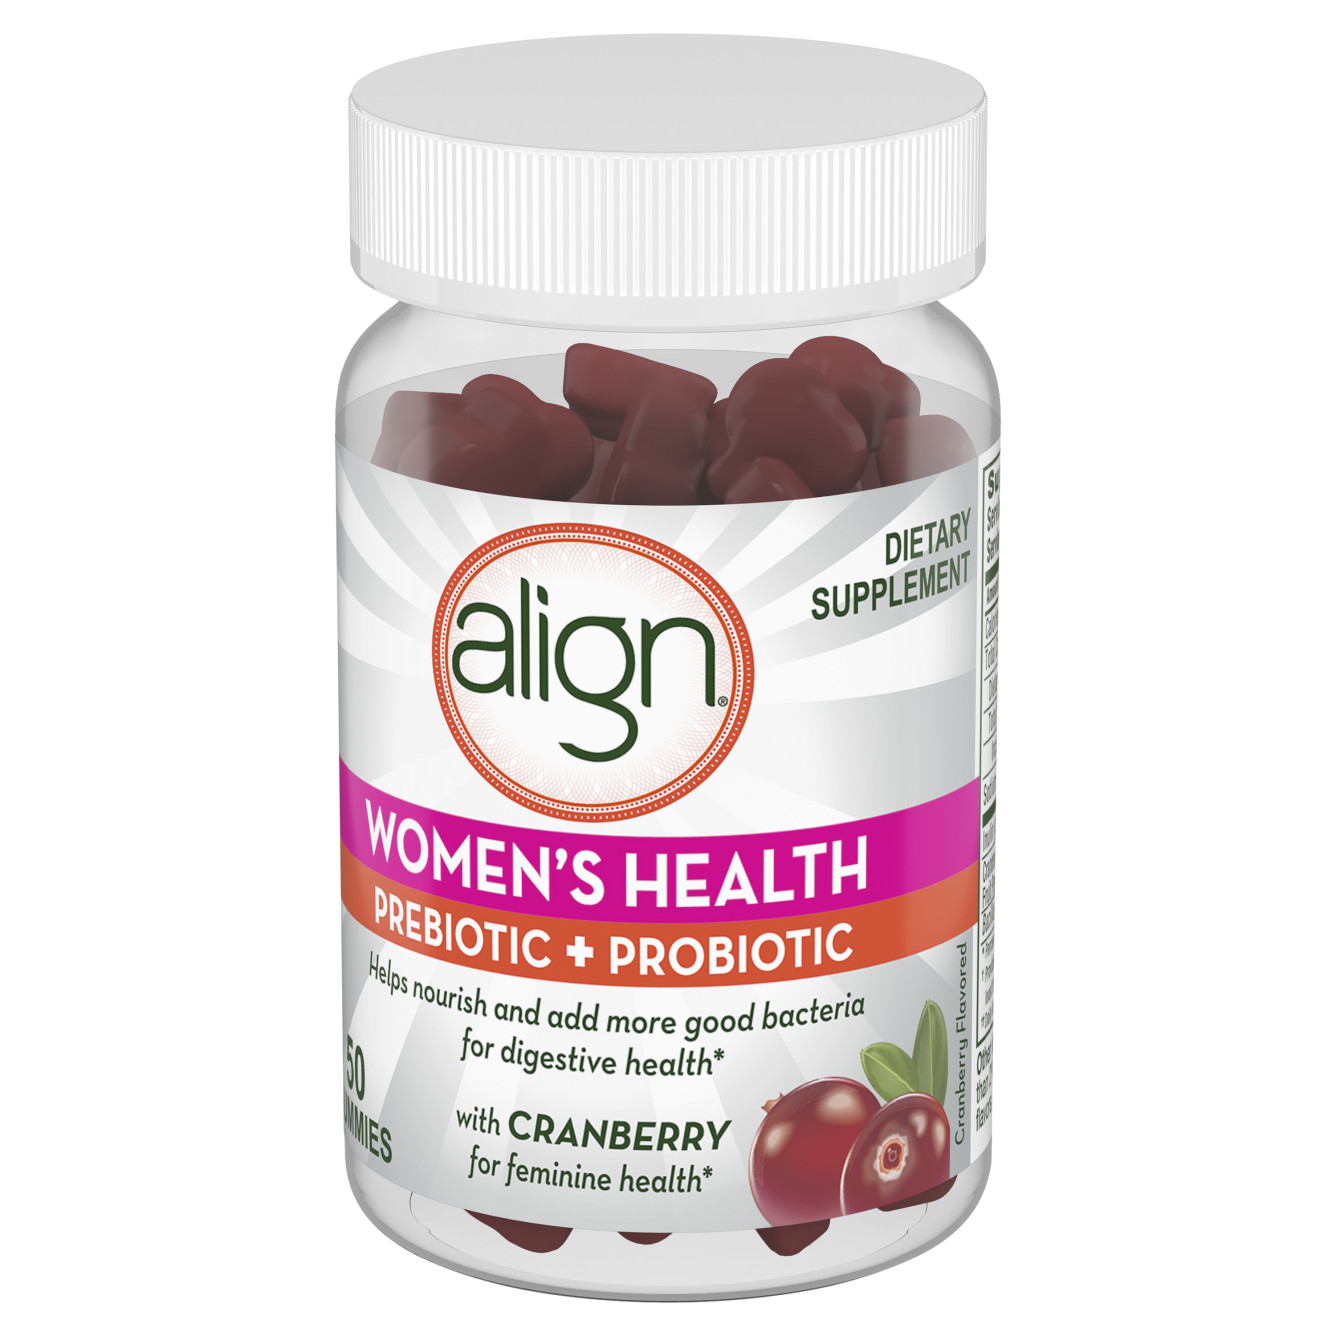 Women's Health Prebiotic + Probiotic gummies side